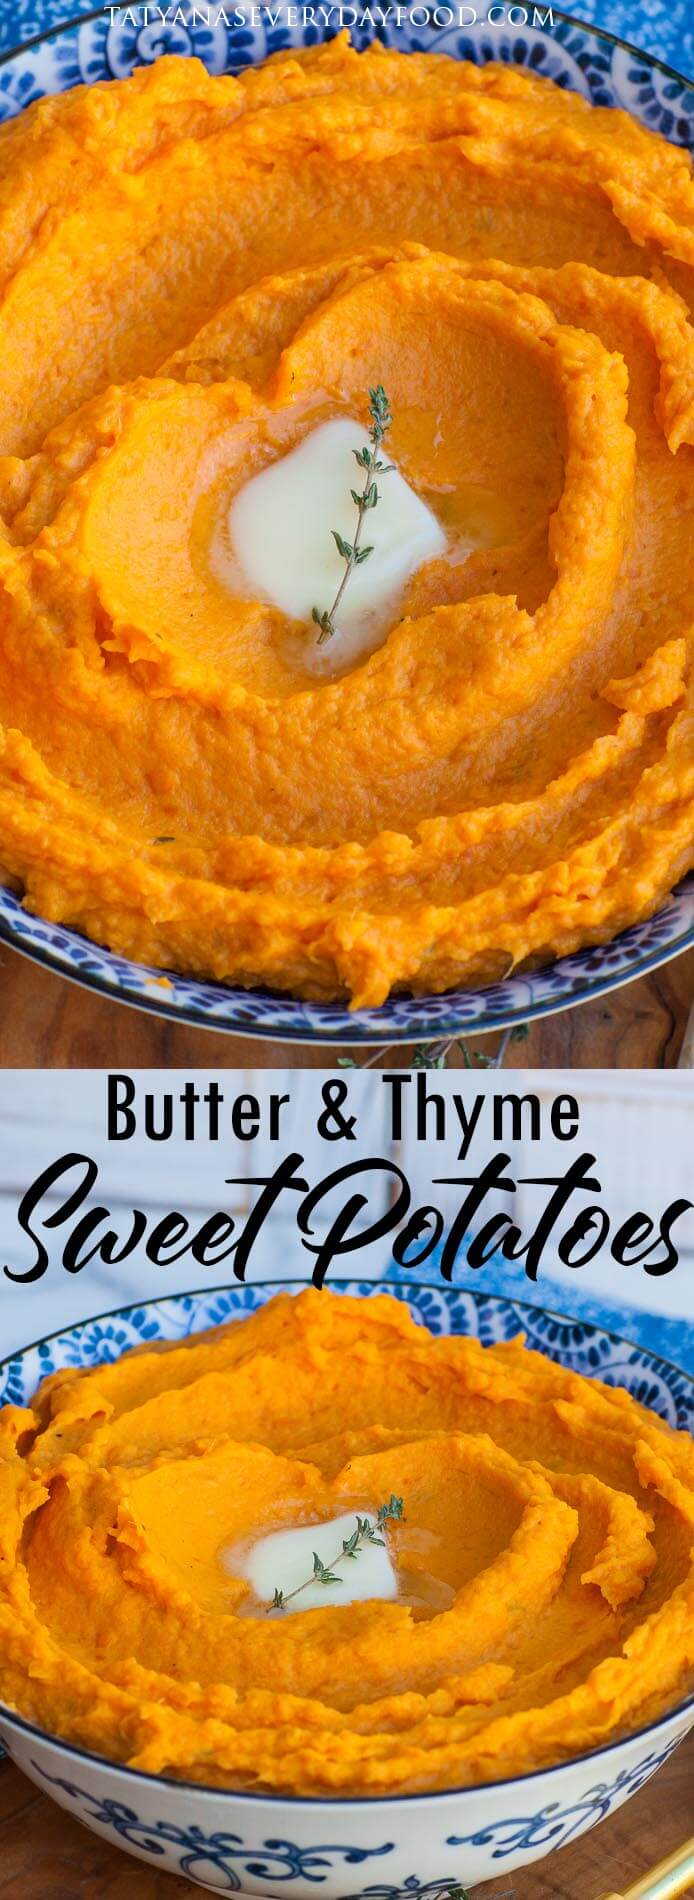 Butter & Thyme Mashed Sweet Potatoes video